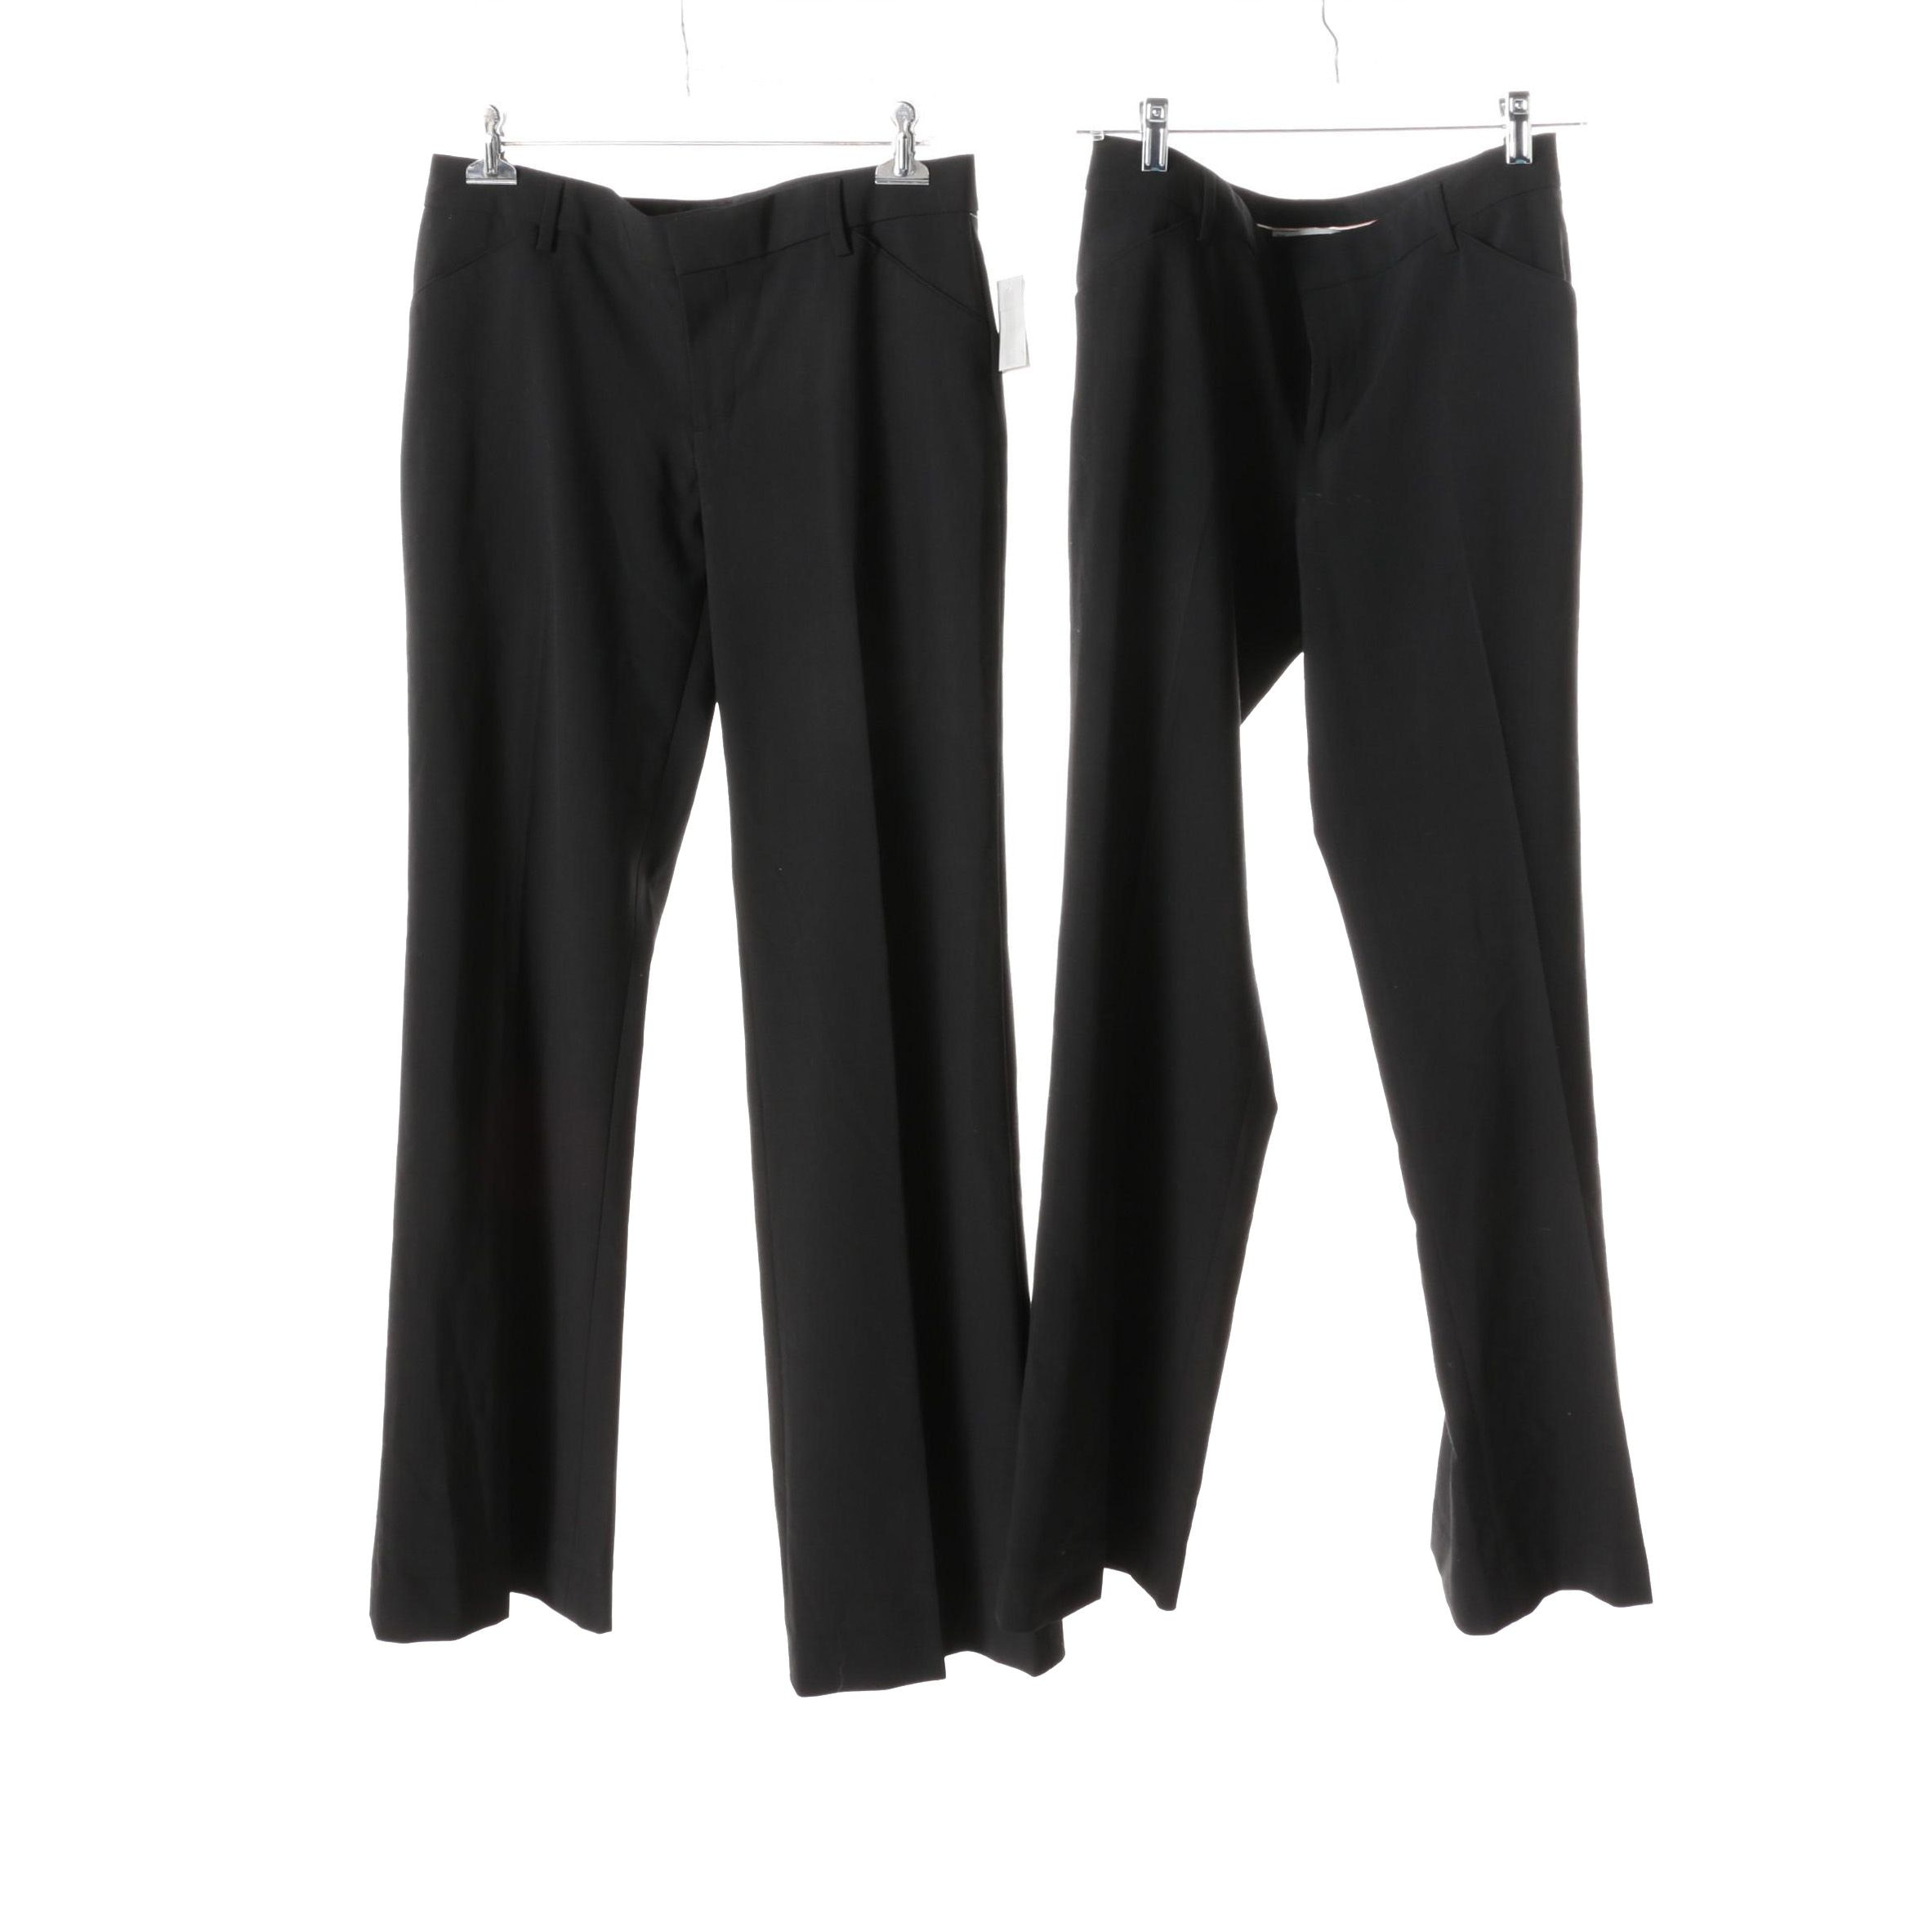 Women's Gap Perfect Trousers in Black